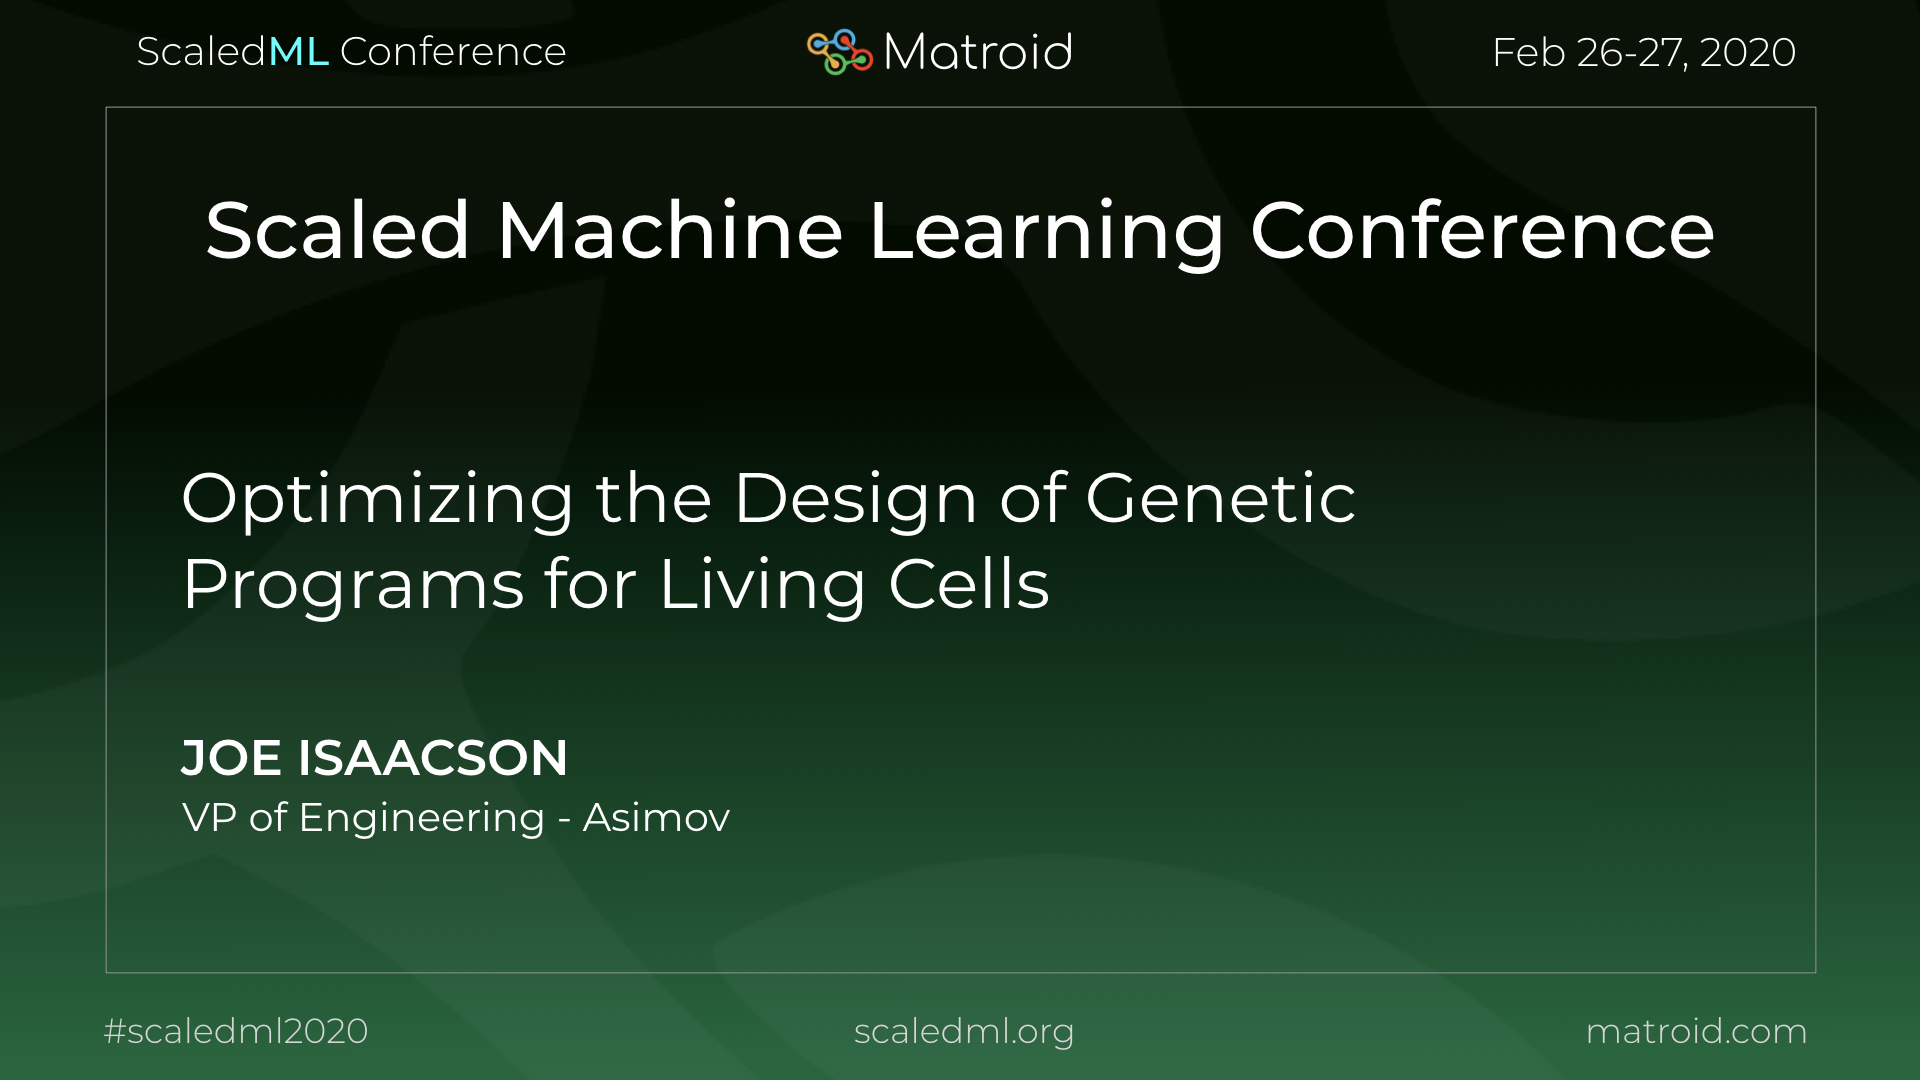 Joe Isaacson Asimov ScaledML Conference TPU CPU GPU Computer Vision AI Artificial Intelligence Machine Learning